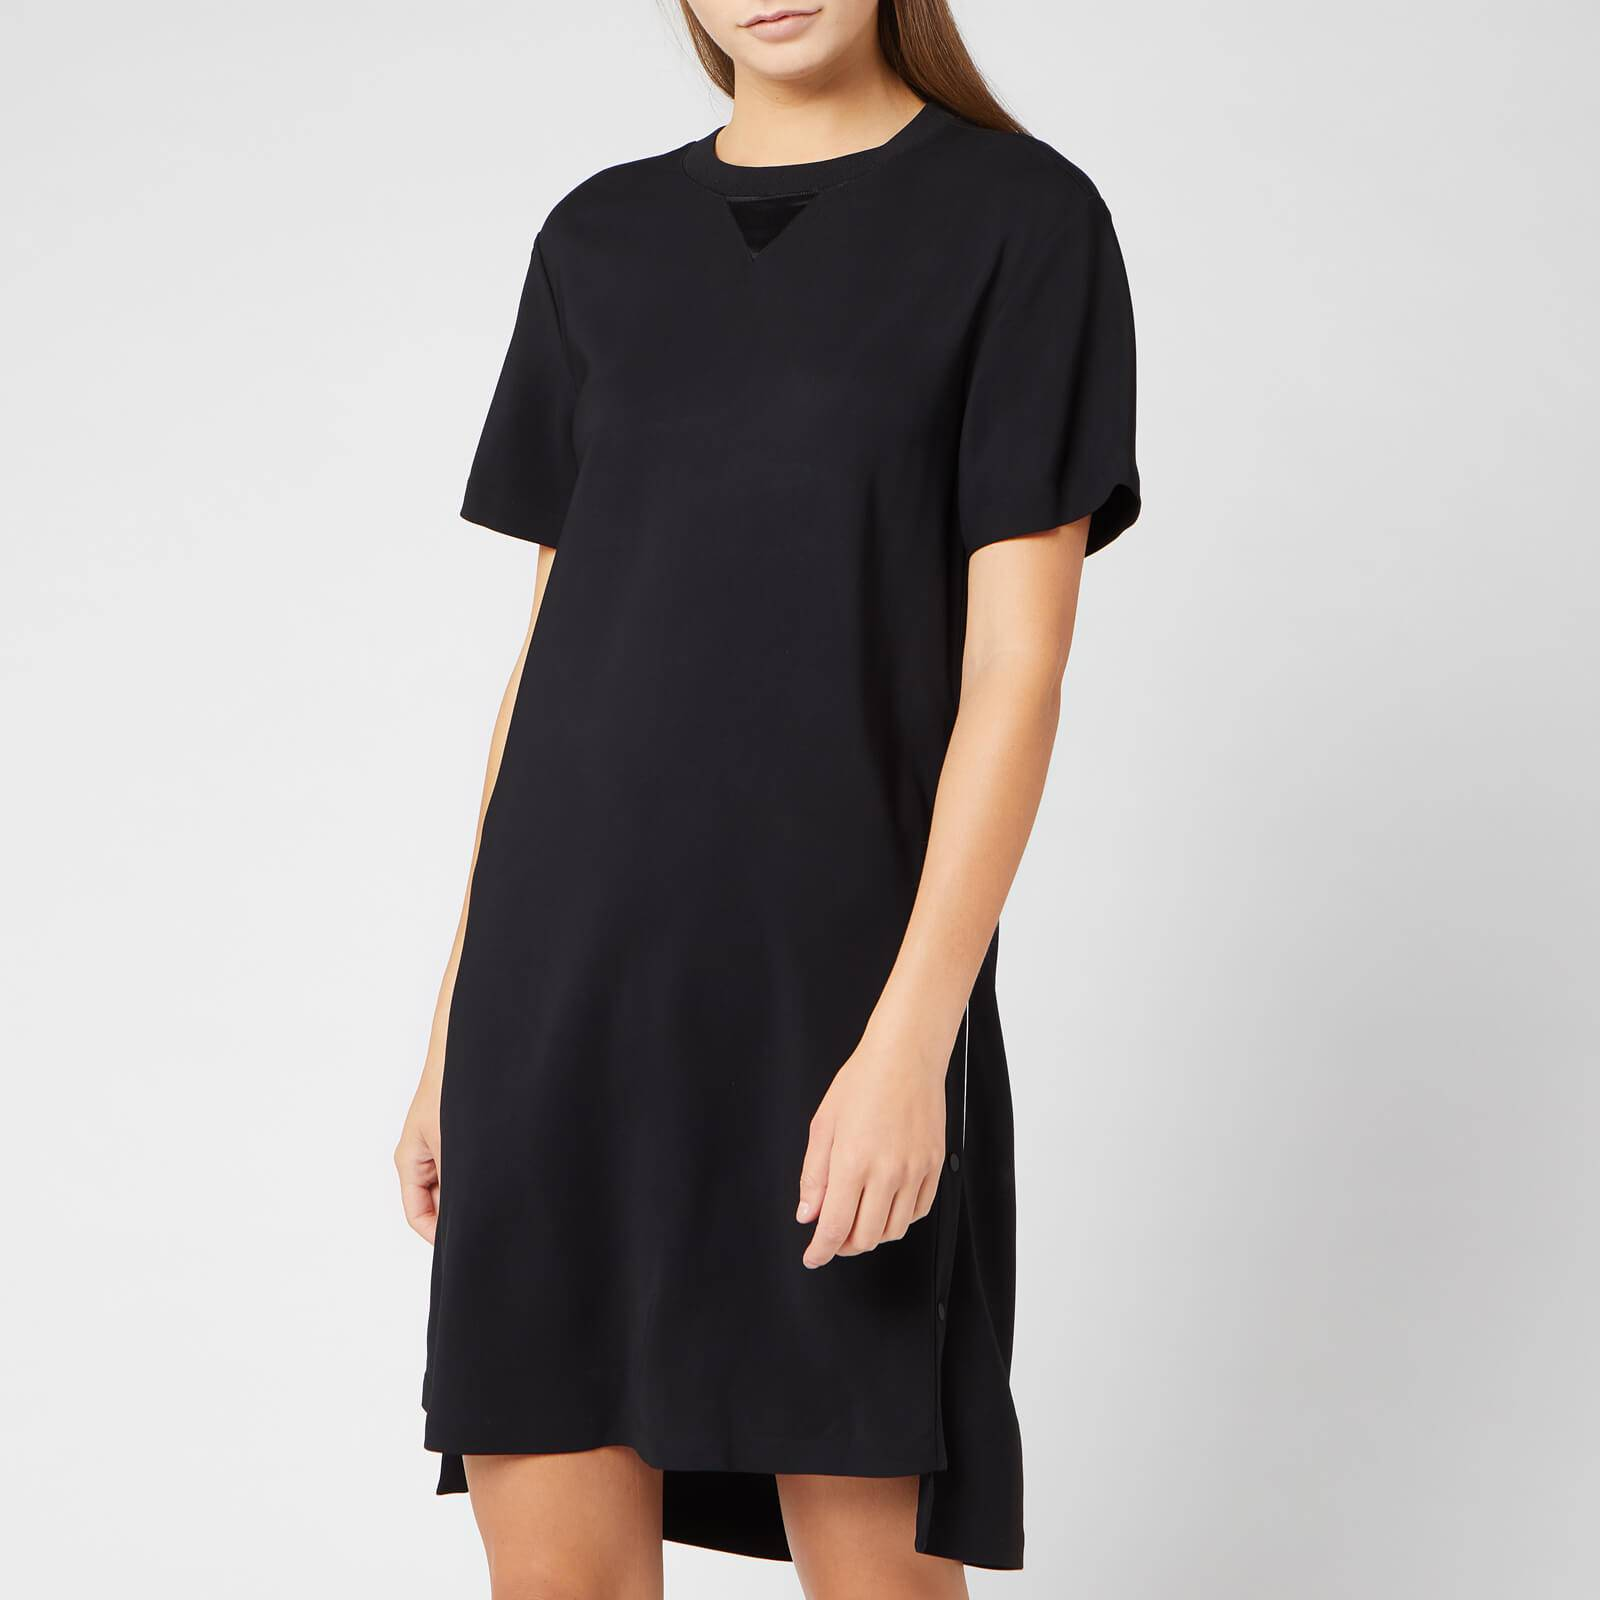 Karl Lagerfeld Women's Dress with Snap Sides - Black - IT 38/UK 6